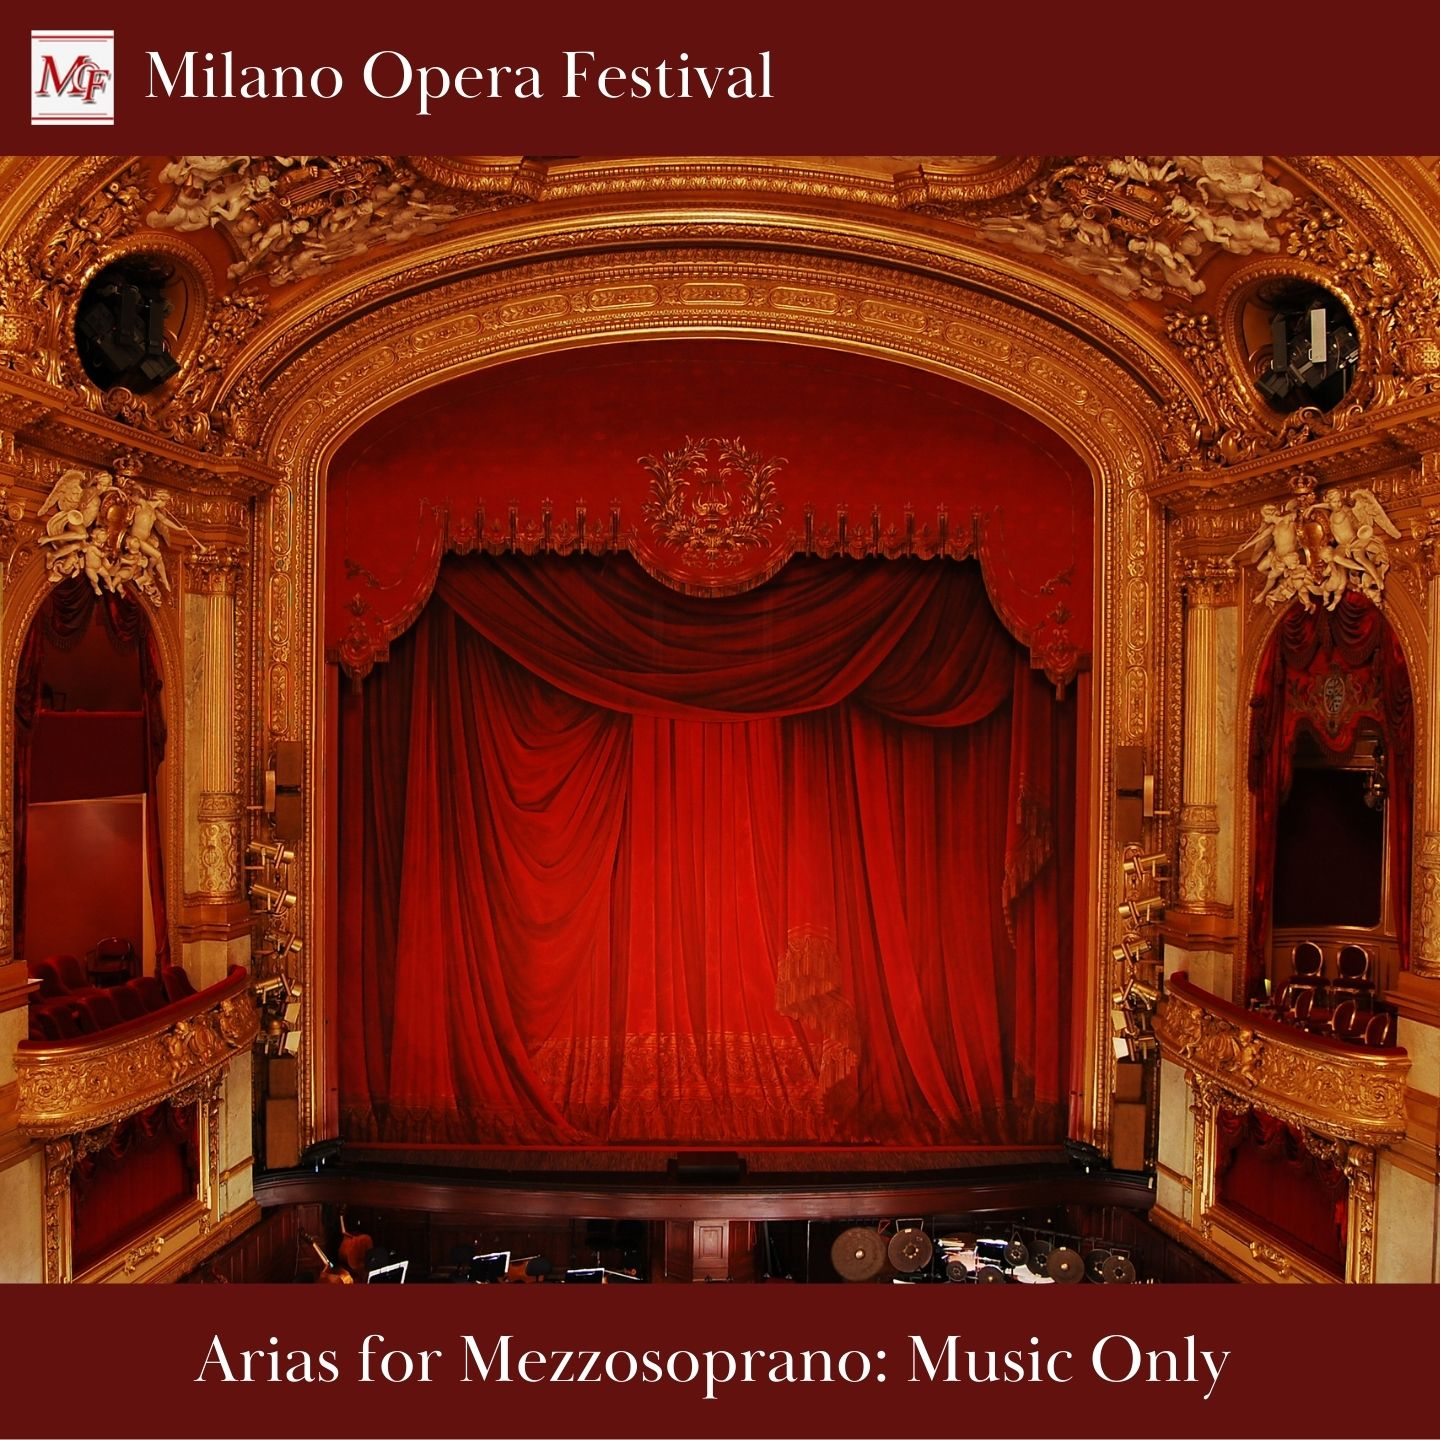 Arias for Mezzosoprano - Only Music + Video Karaoke